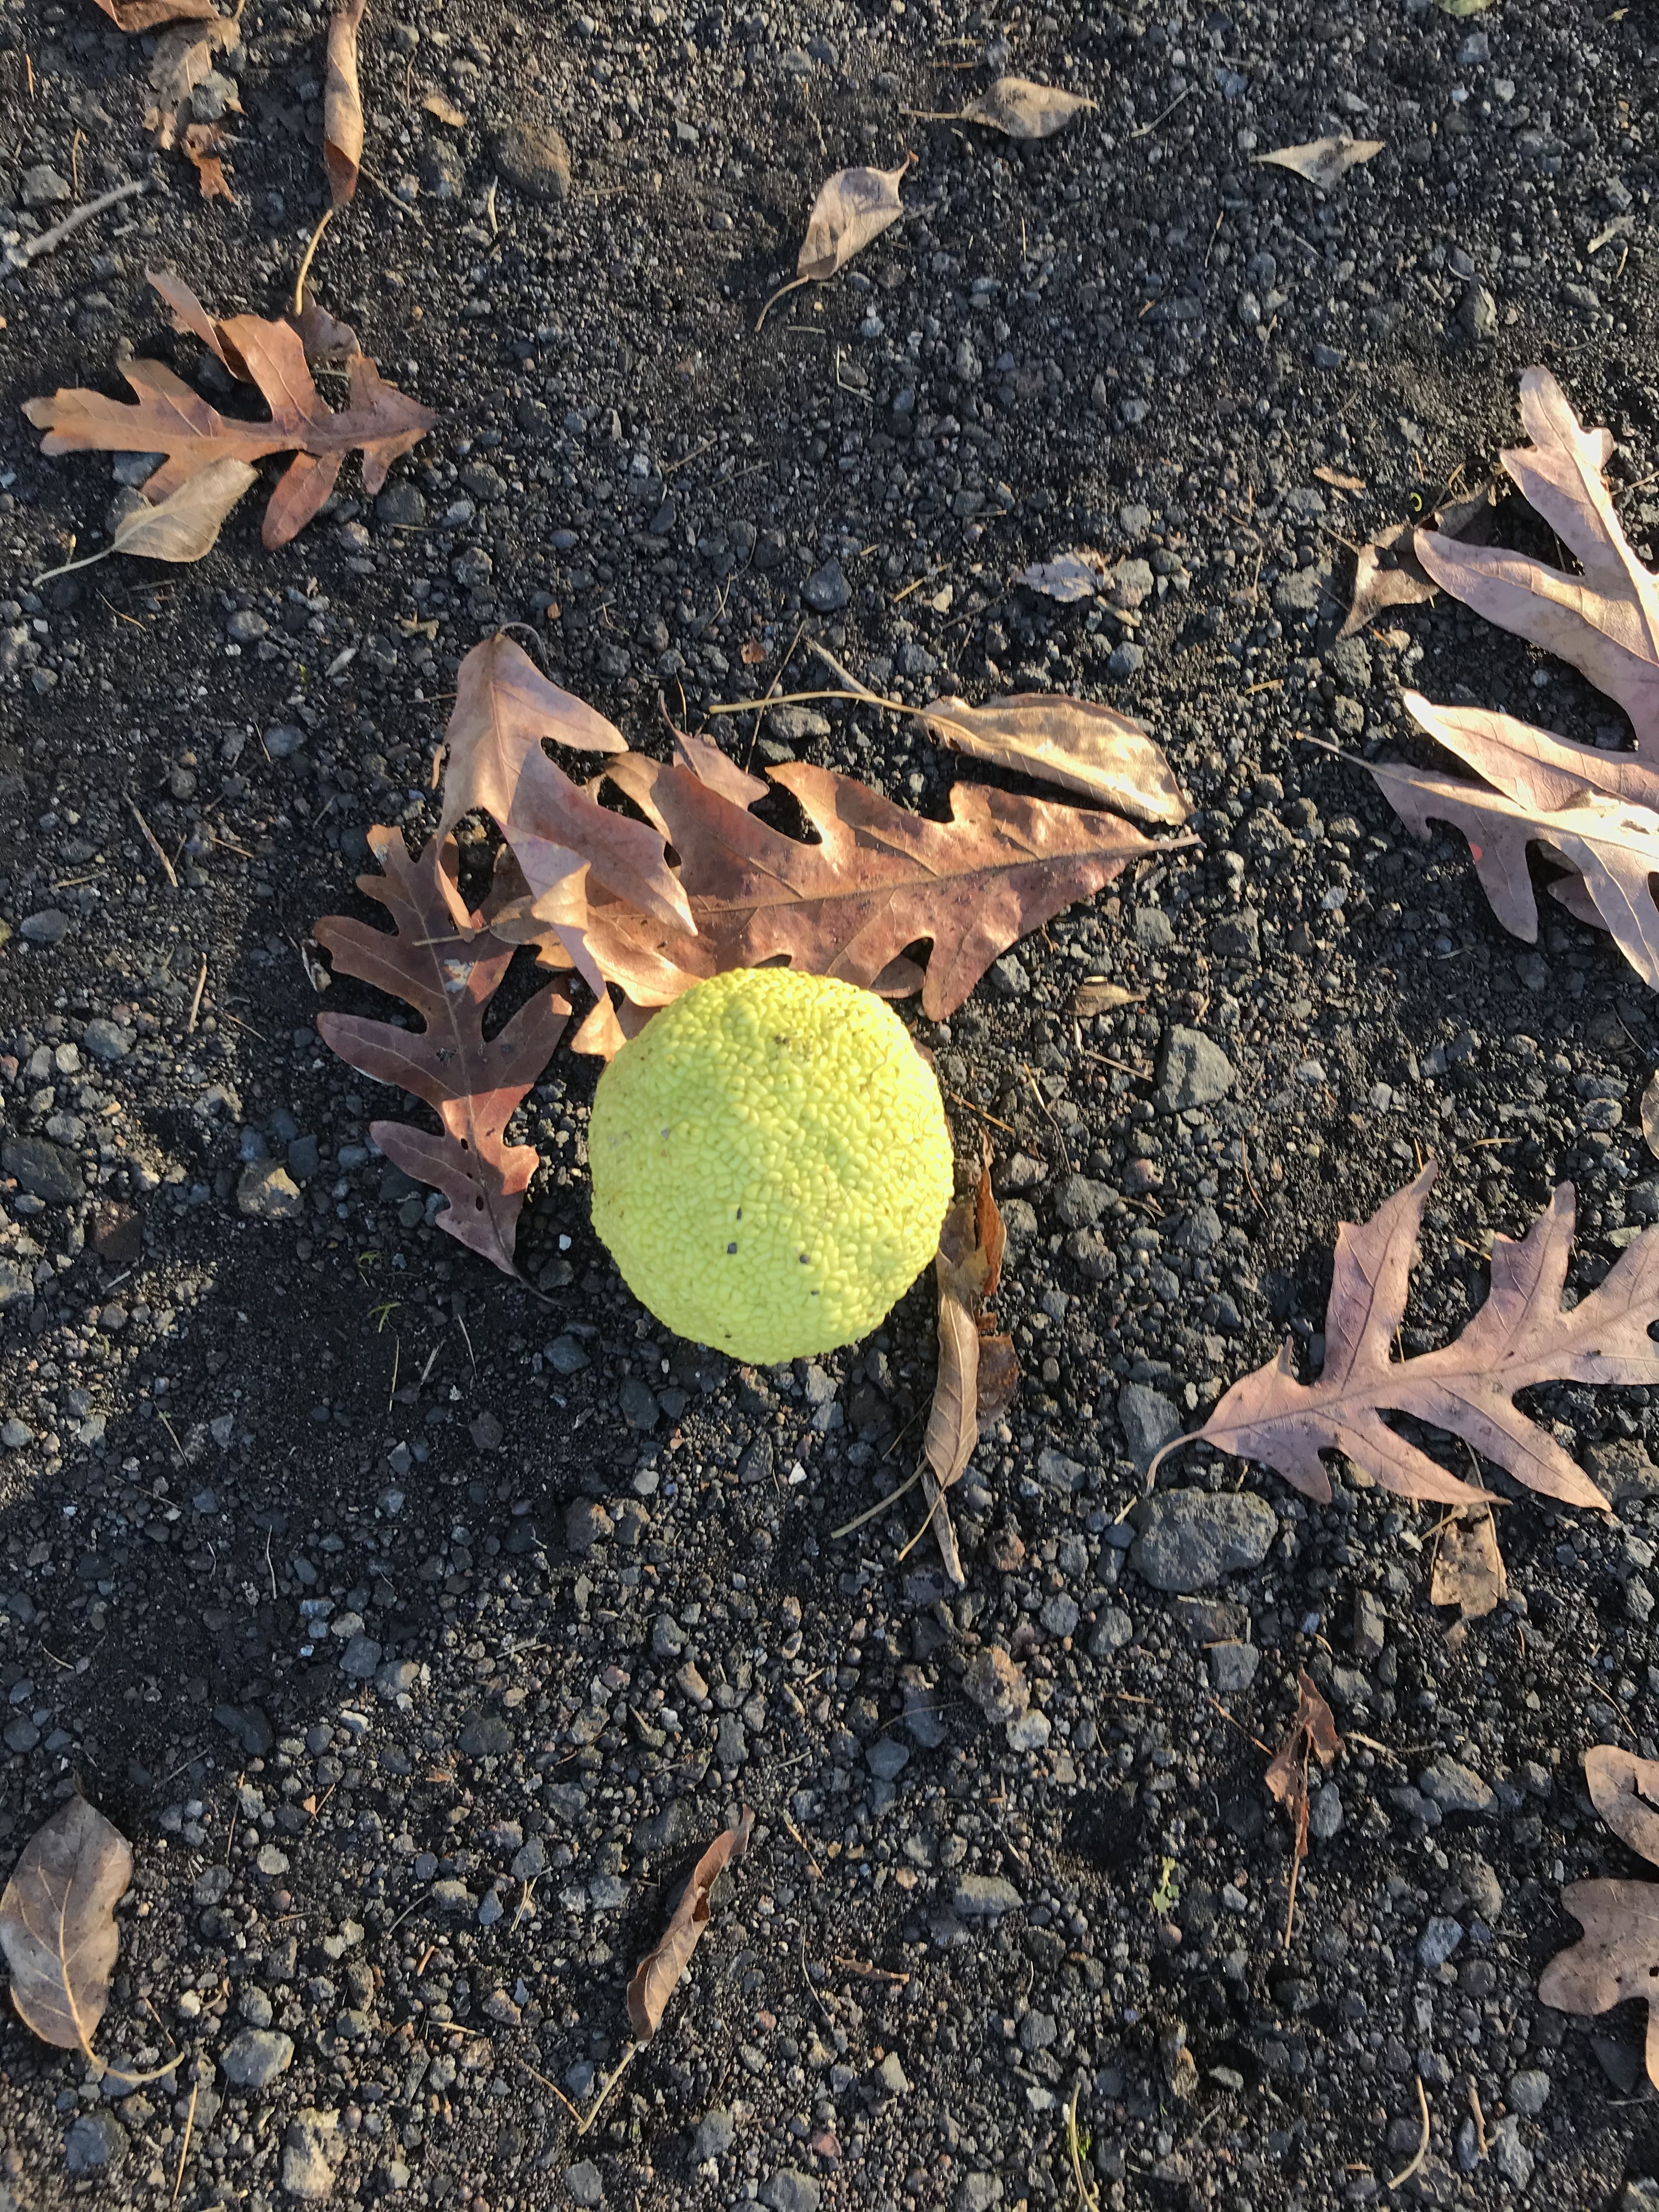 osage (monkey brain) orange fallen on the ground.